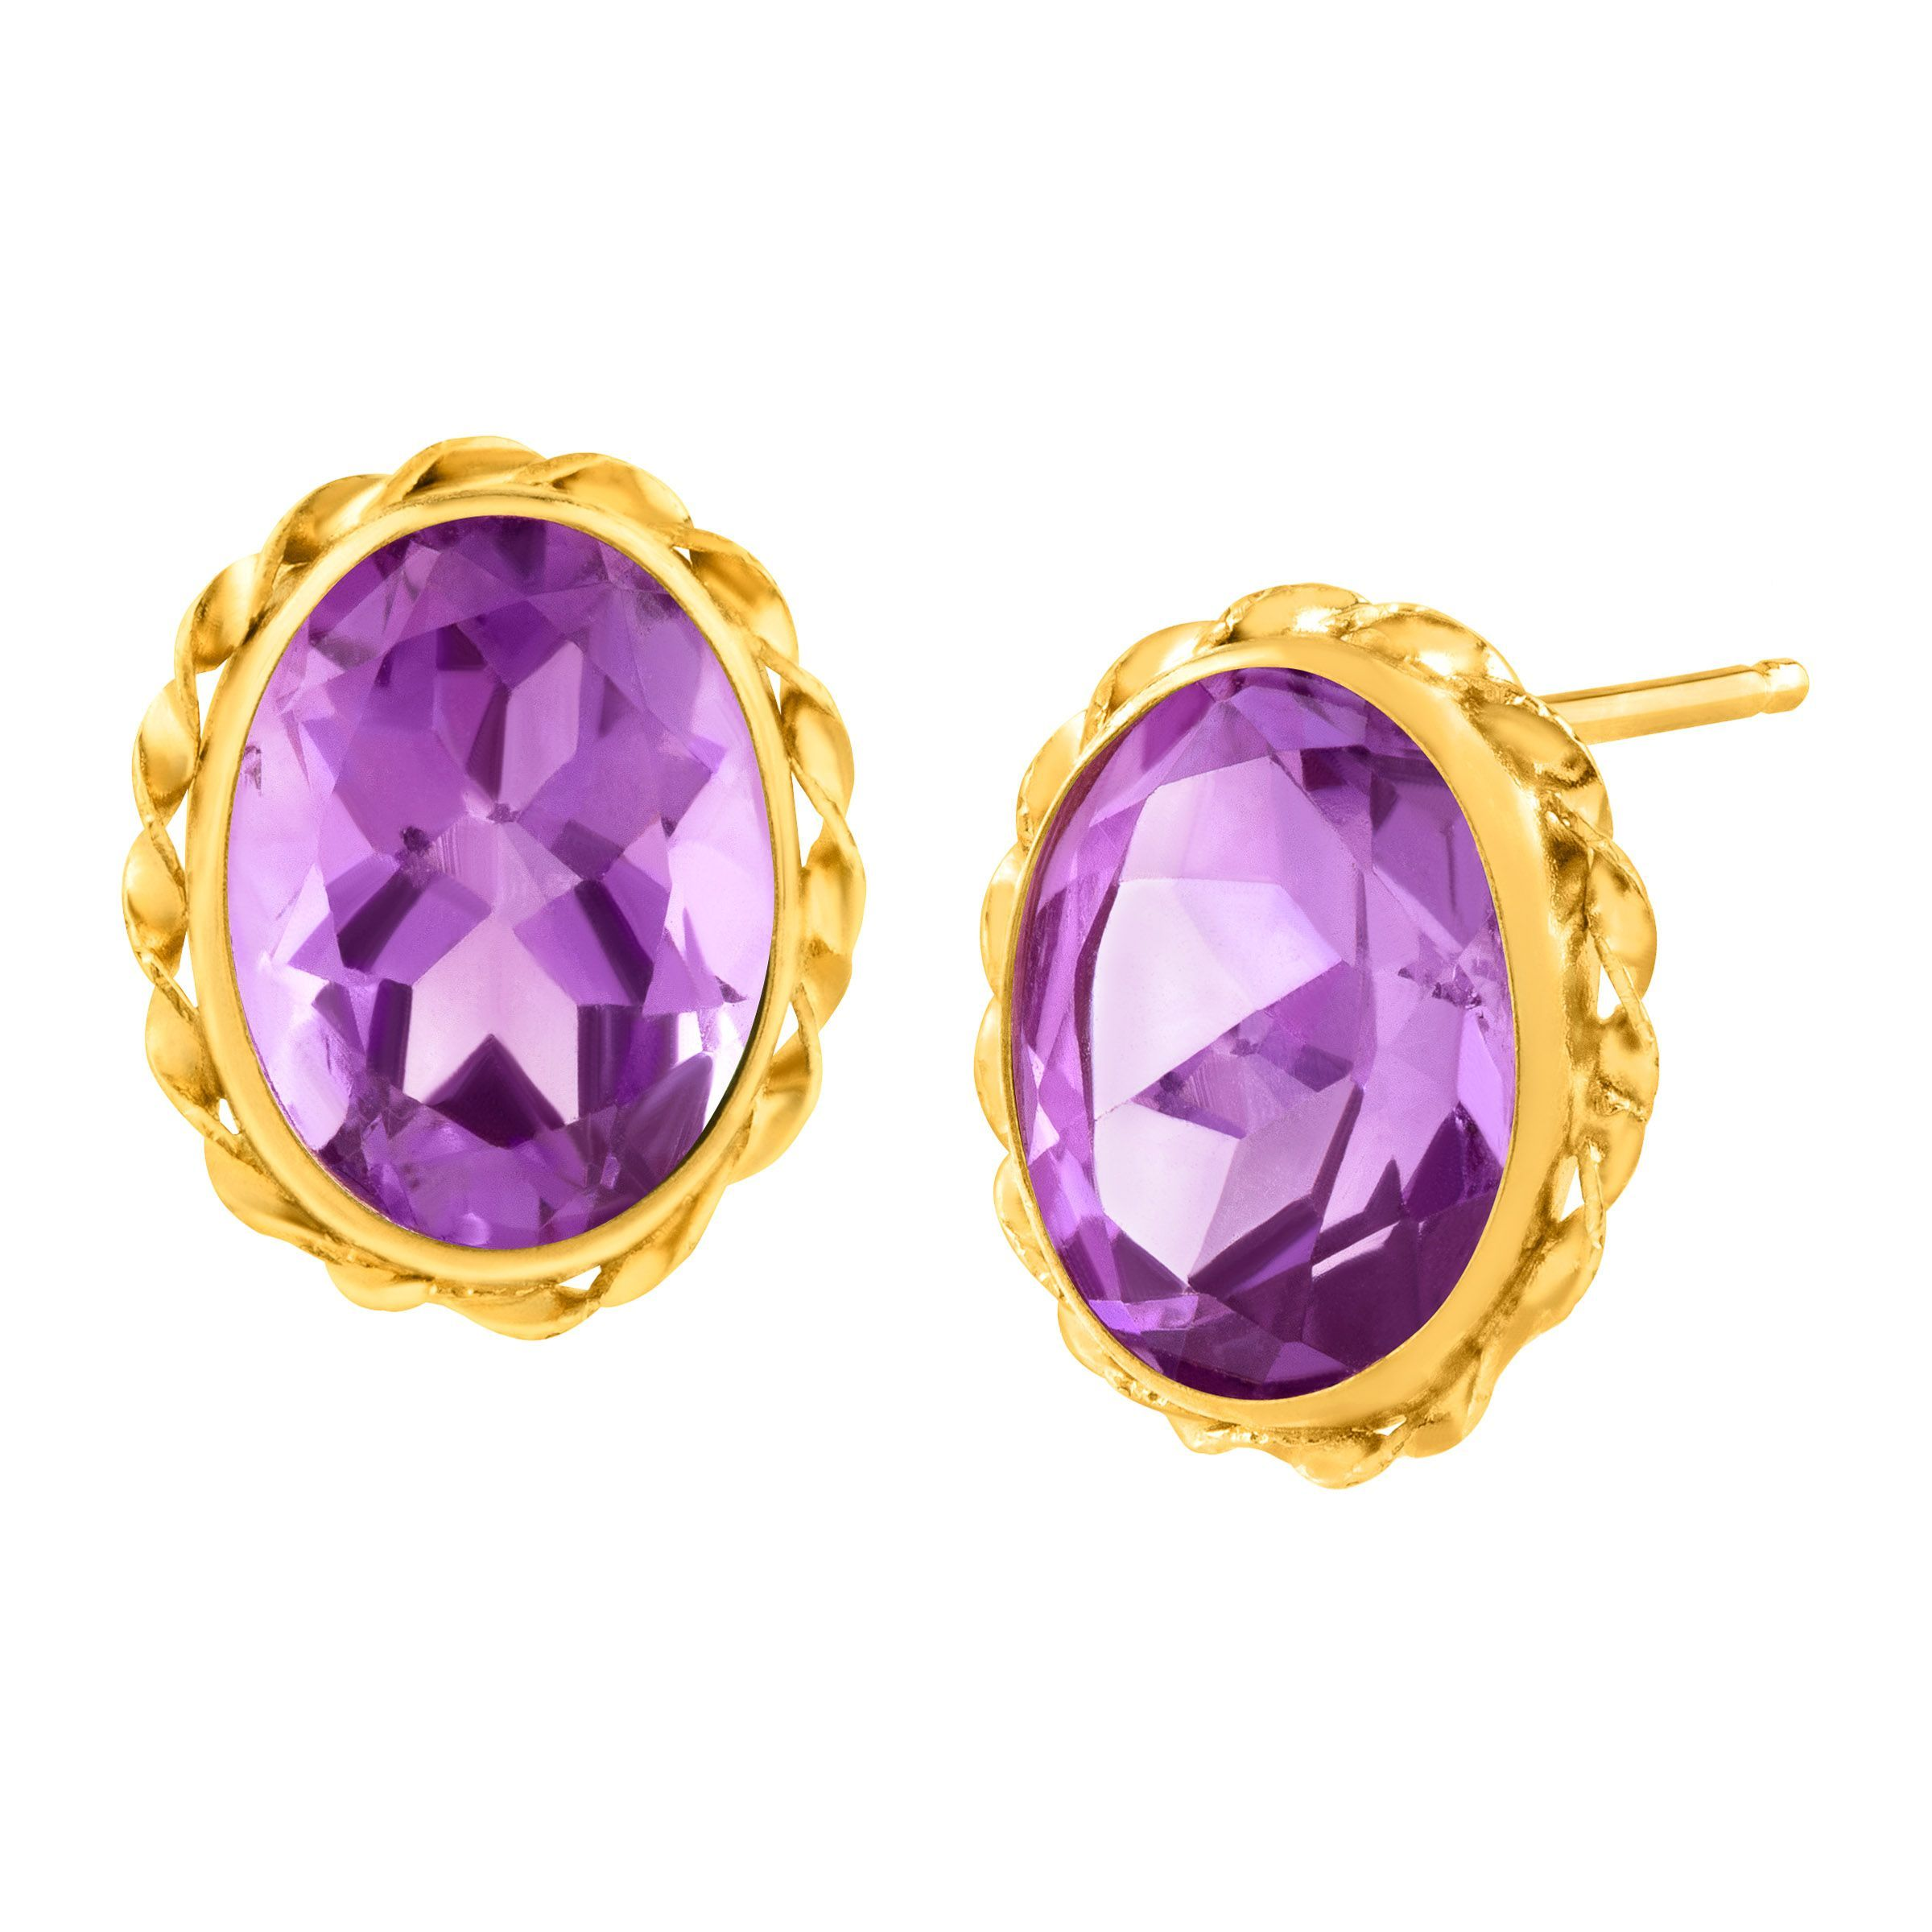 Button Earrings: 2 1/2 Ct Natural Amethyst Button Stud Earrings In 14K Gold